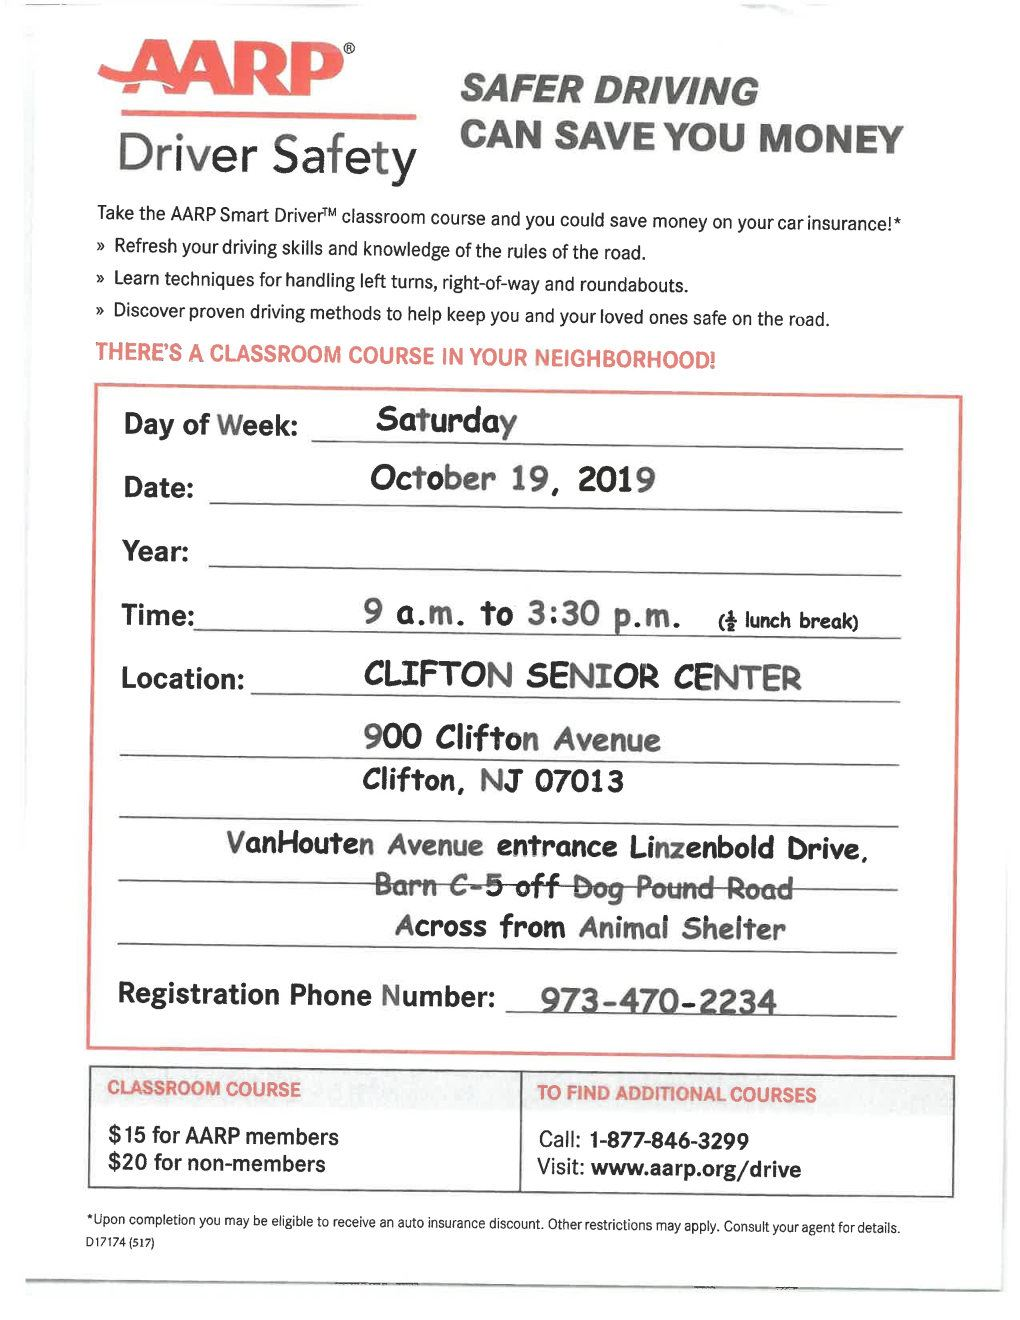 AARP SAFE DRIVING